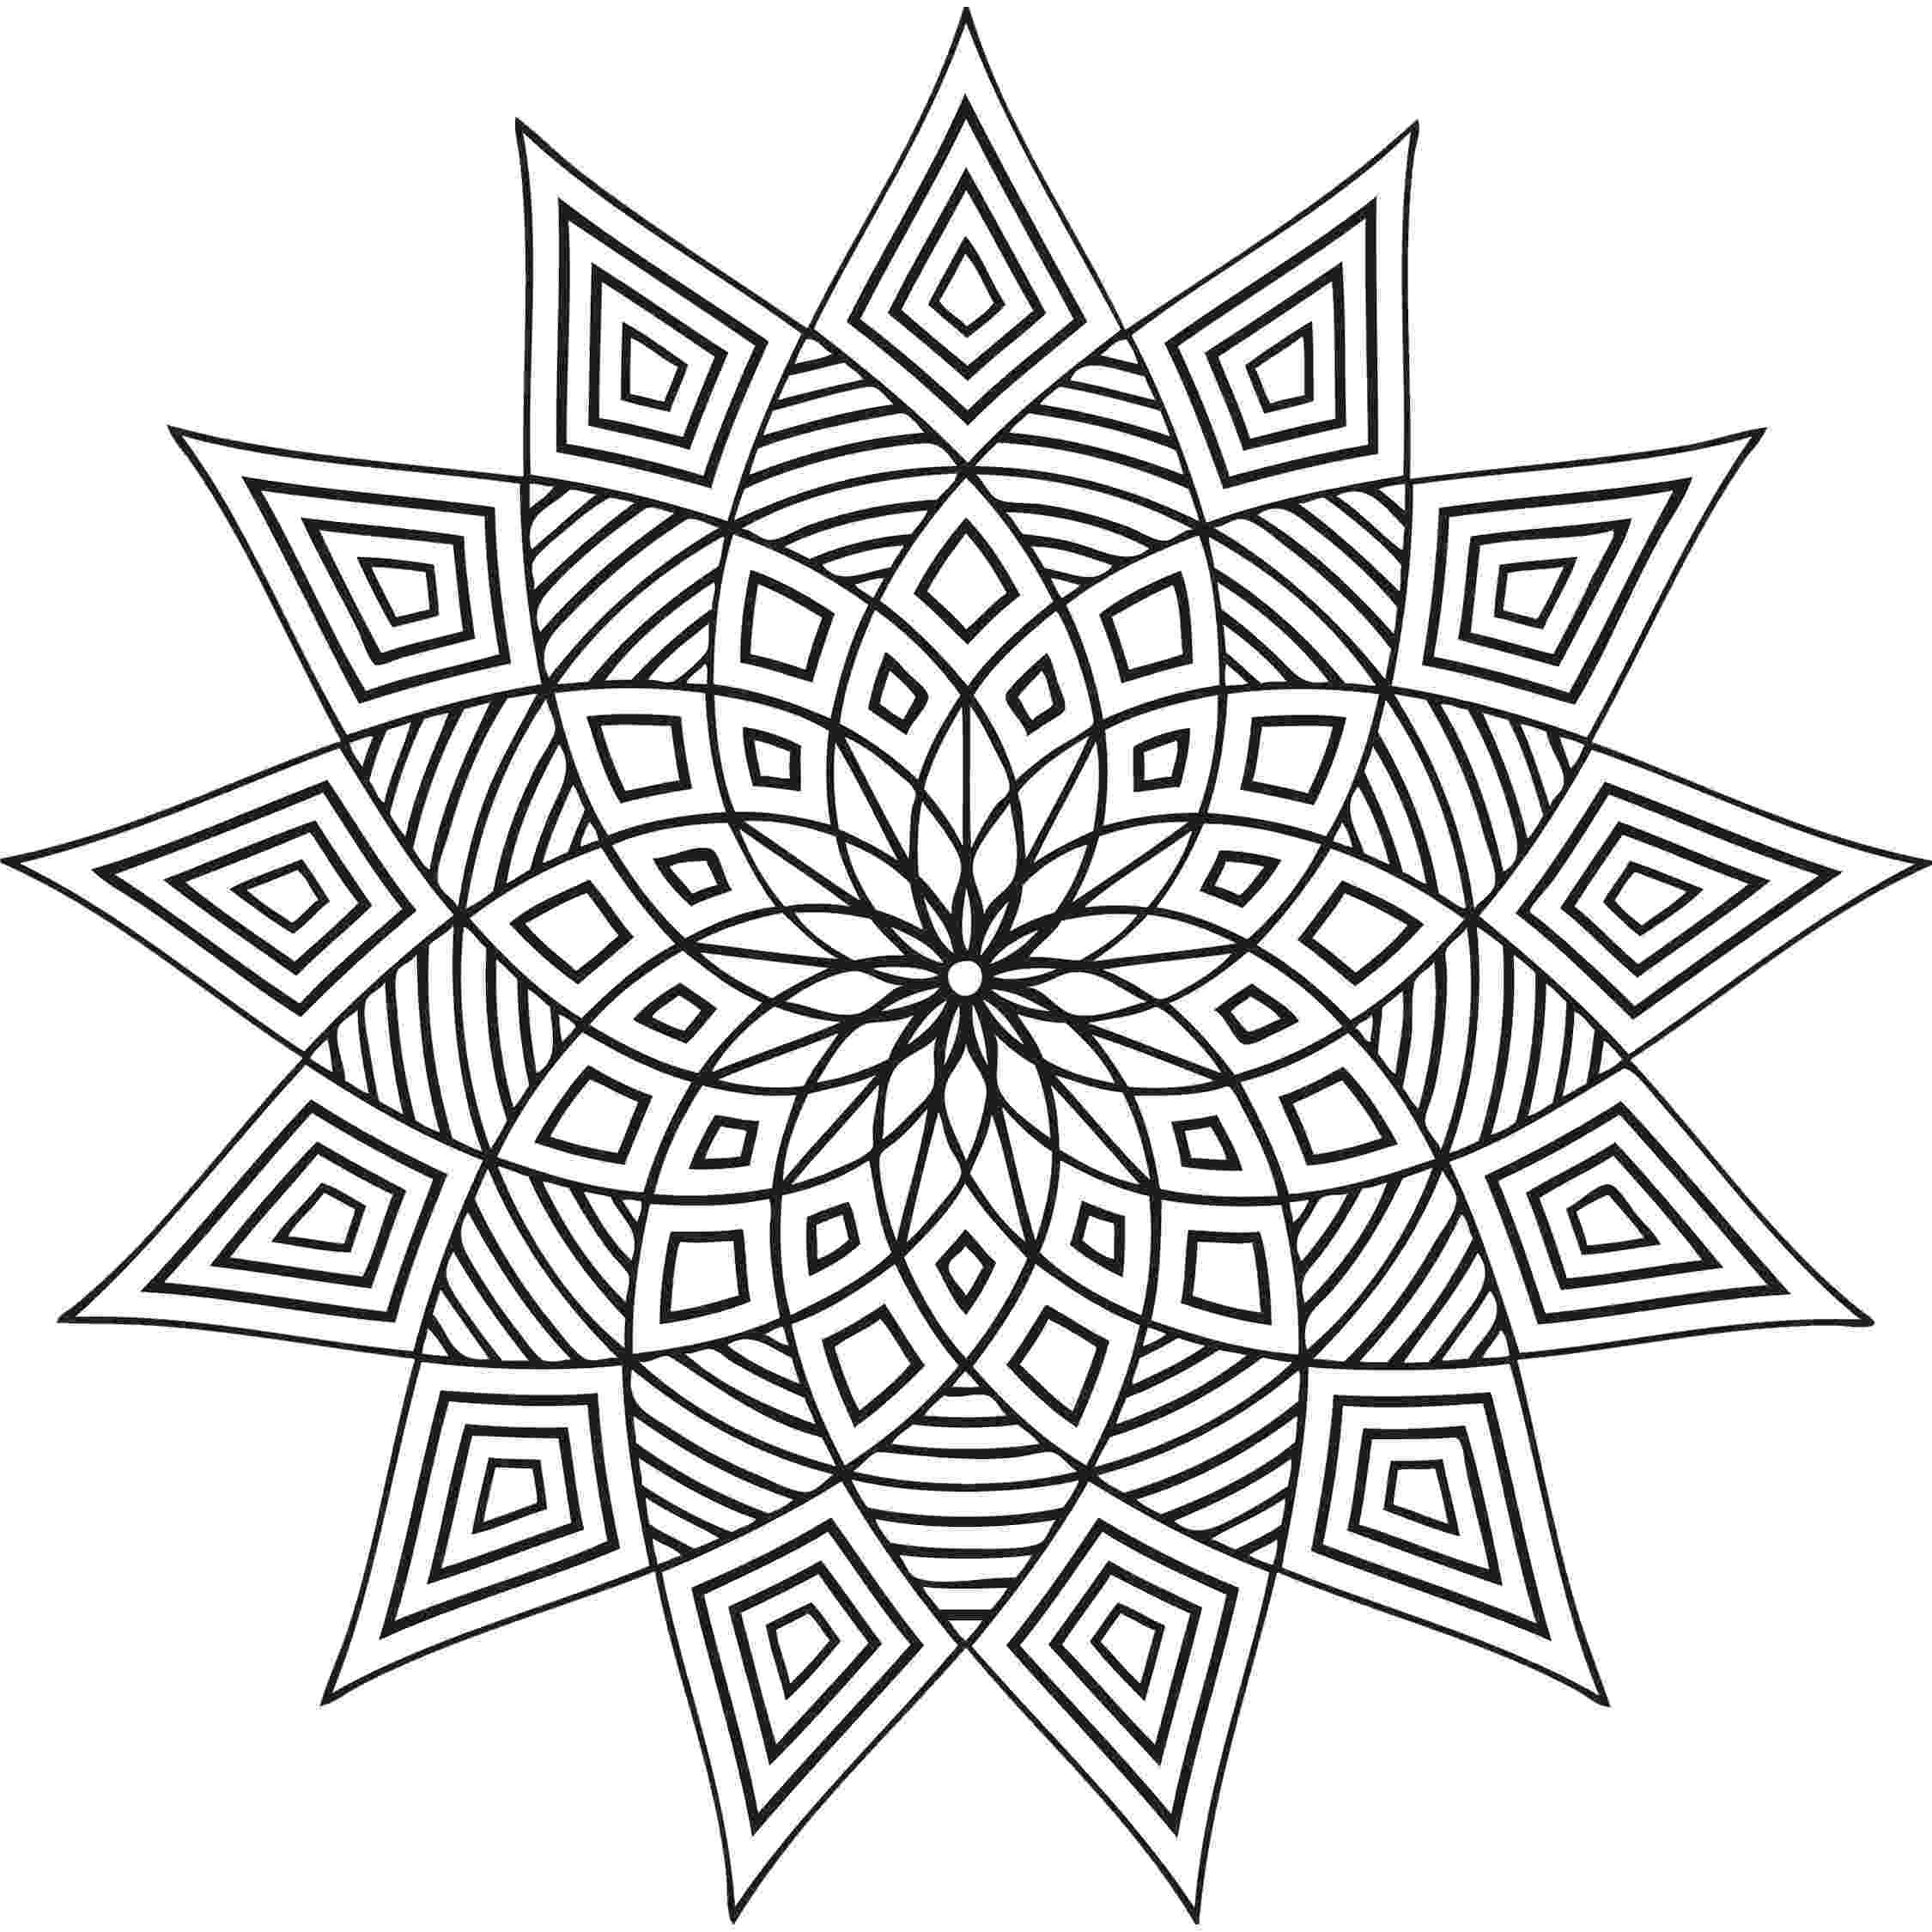 colouring pattern colouring designs thelinoprinter colouring pattern